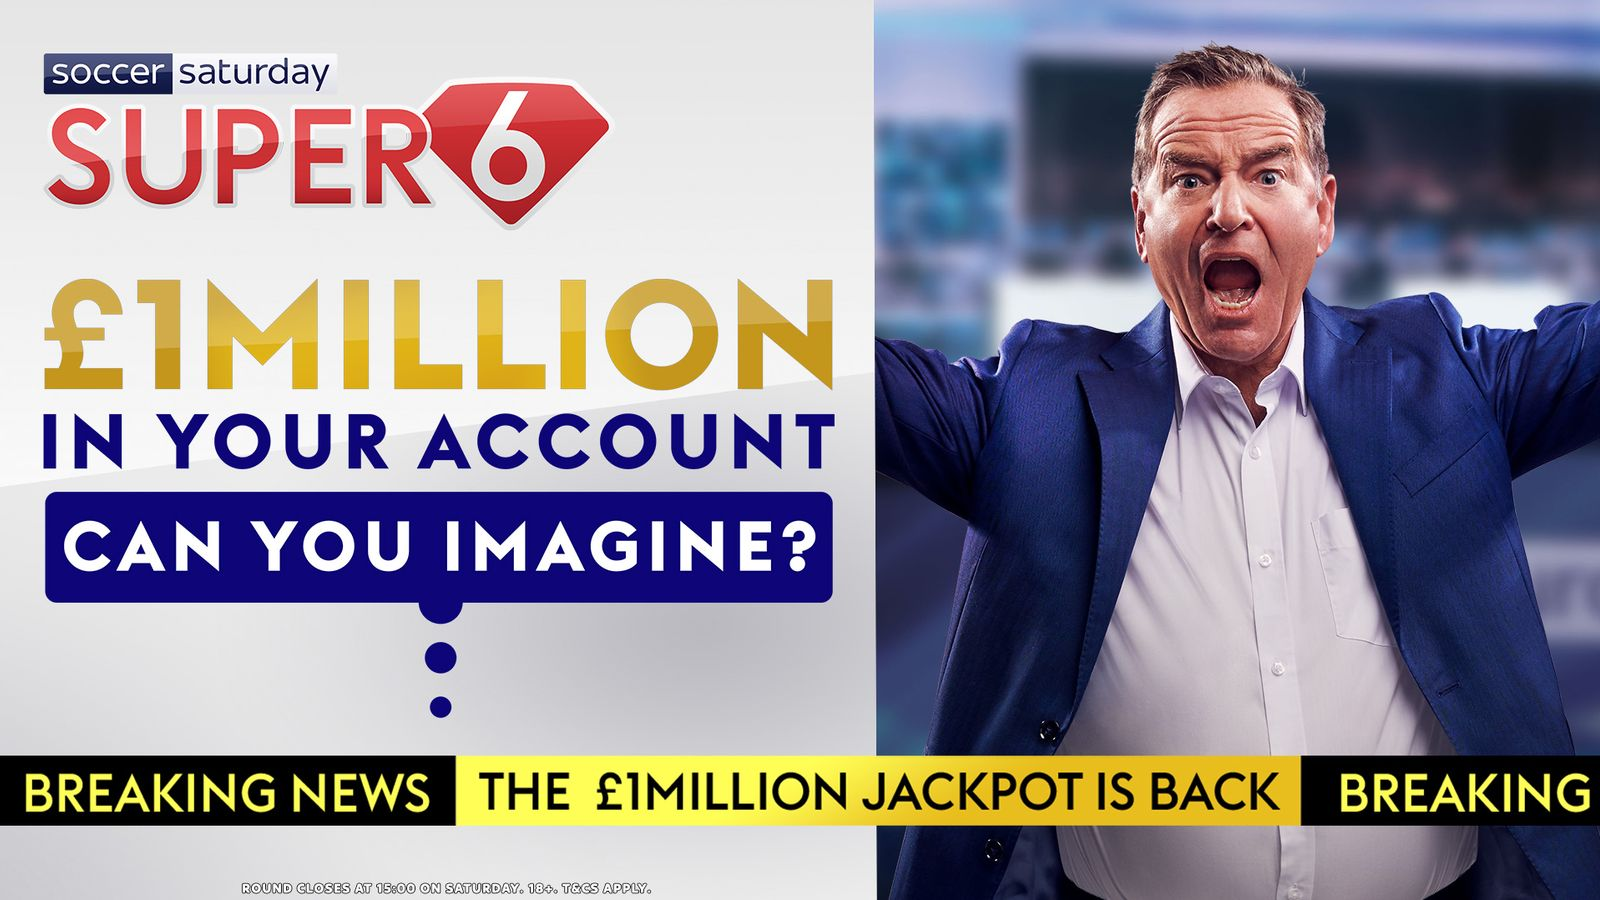 Super 6 £1m preview - One day to go!